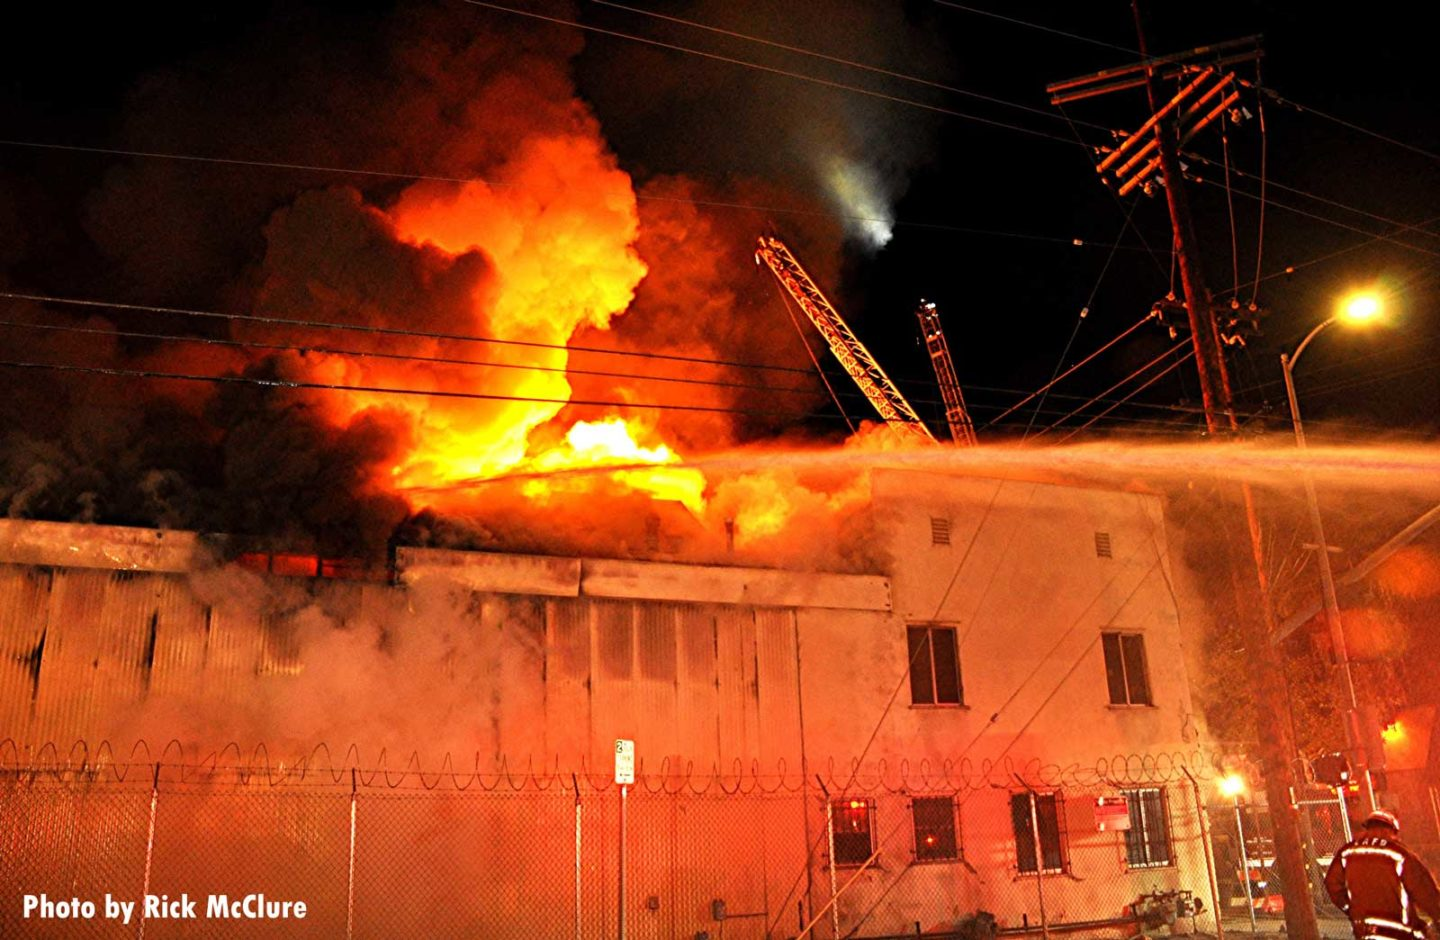 Flames shoot from the roof of the building in Los Angeles